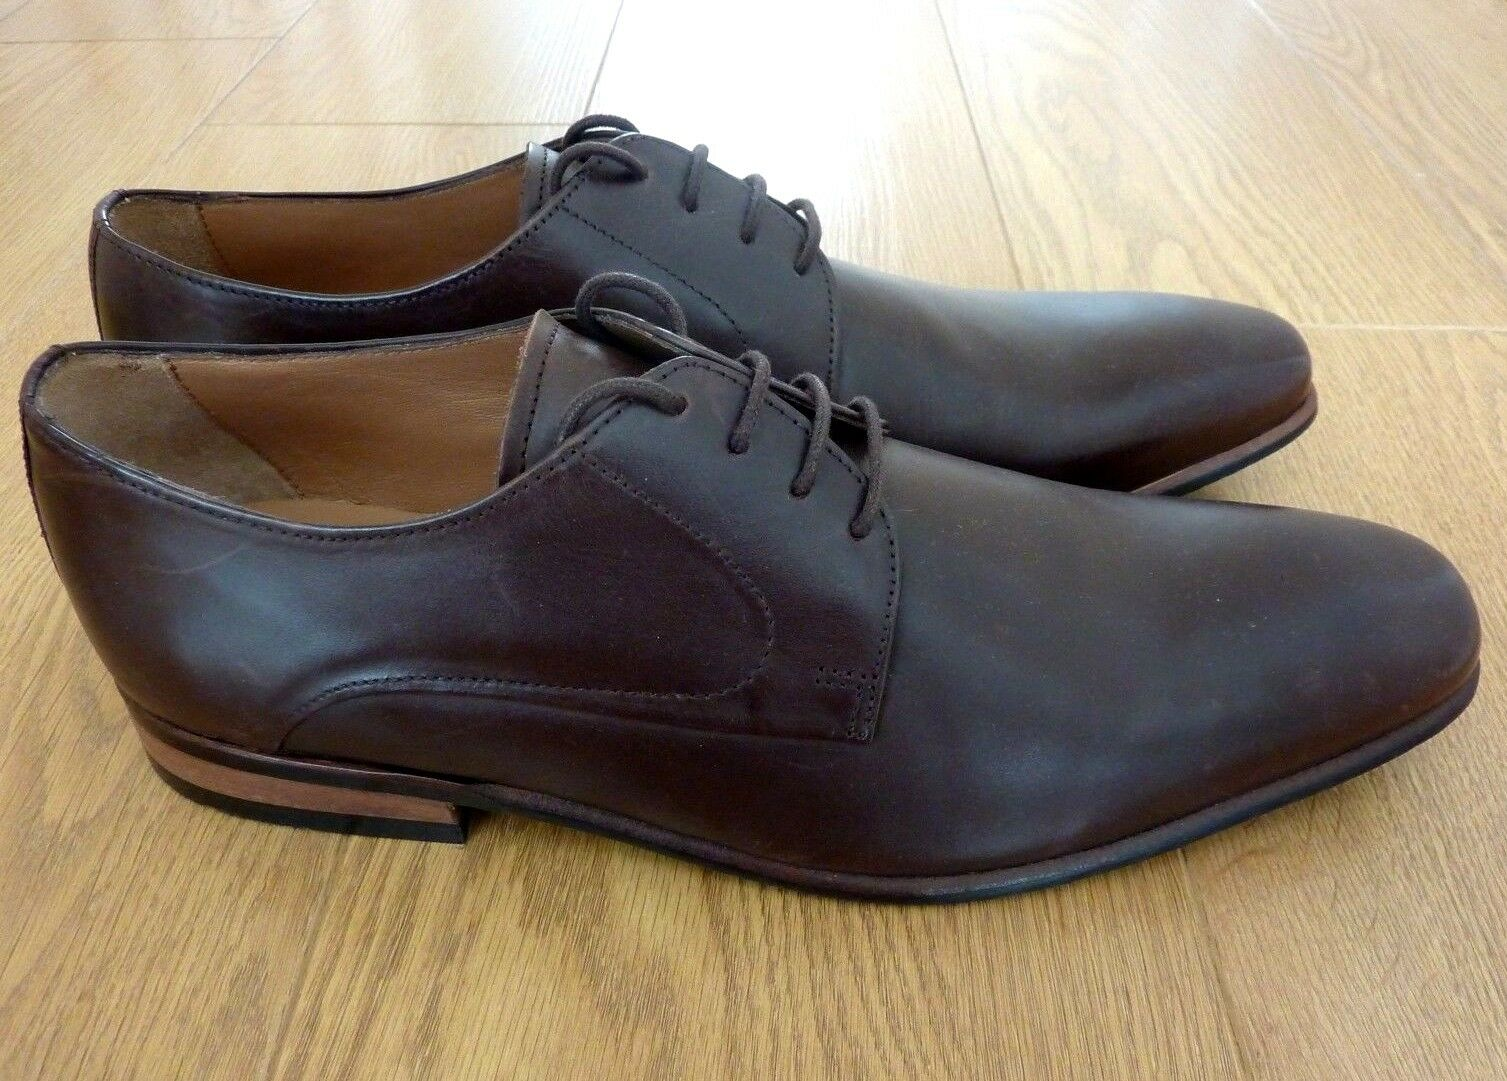 M&S Collection Luxury Derby Braun Leder ODD SIZE Right Schuhes Left UK 12, Right SIZE UK 10 bd85a0